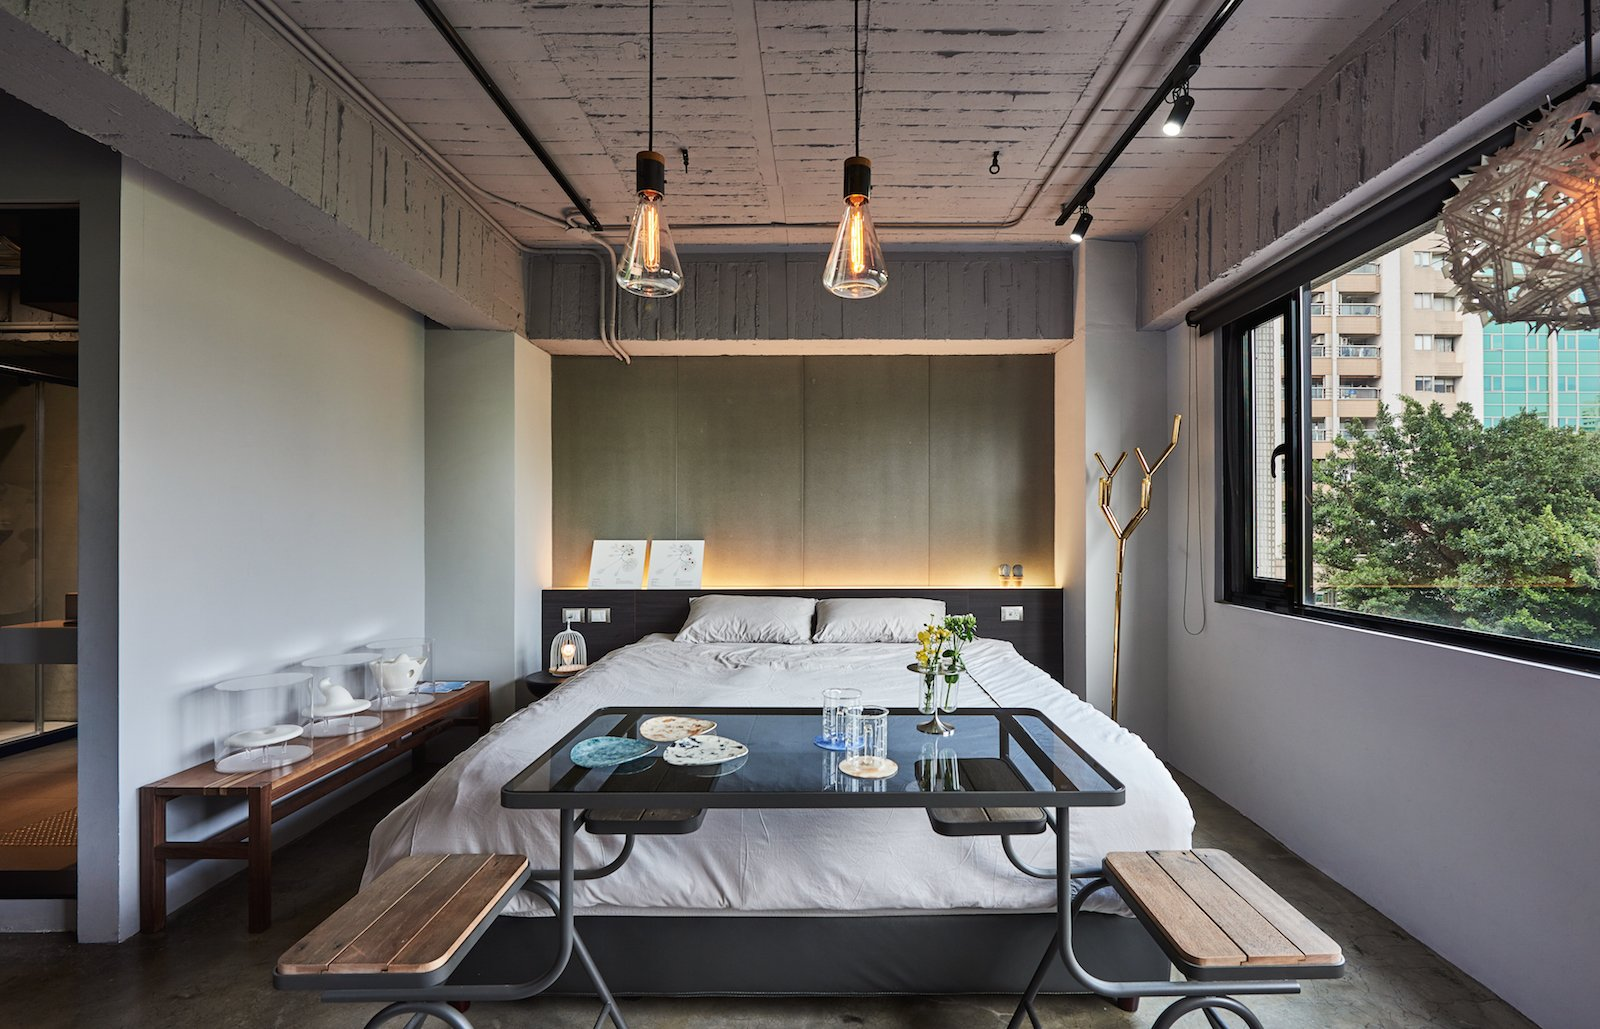 Located on the fifth floor of an unassuming building in Datong district, Play Design Hotel is a hidden gem with only a small sign to announce its presence. Polished concrete walls and floors coupled with large, black, metal-framed windows create an elegant backdrop for the hand-picked design objects sourced from over 100 local Taiwanese designers.